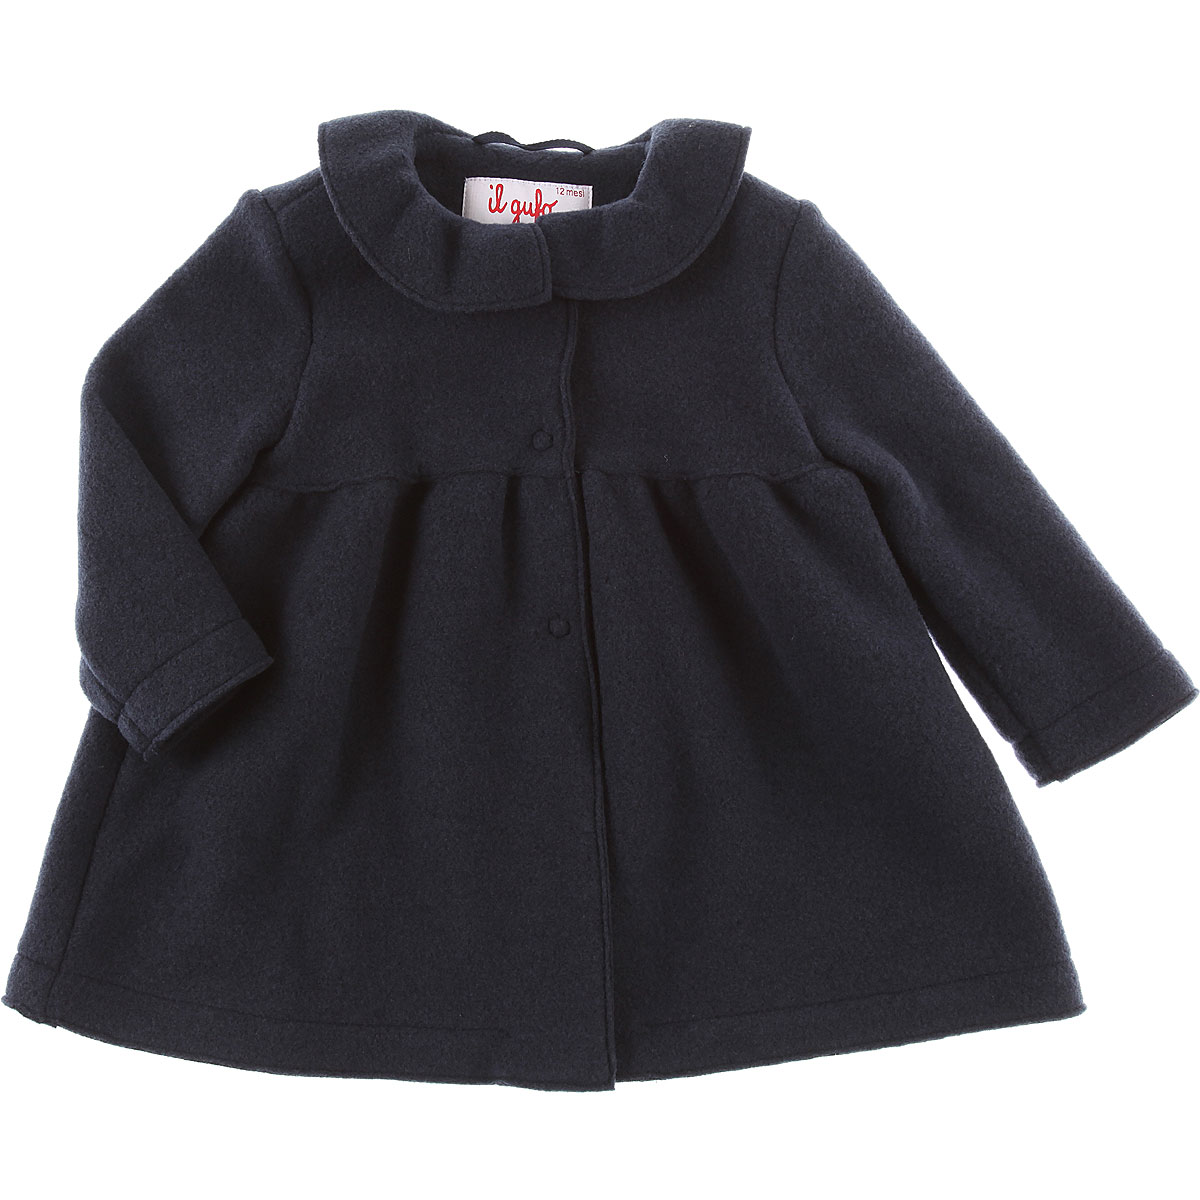 Image of Il Gufo Baby Coats for Girls, navy, polyester, 2017, 12M 18M 2Y 6M 9M